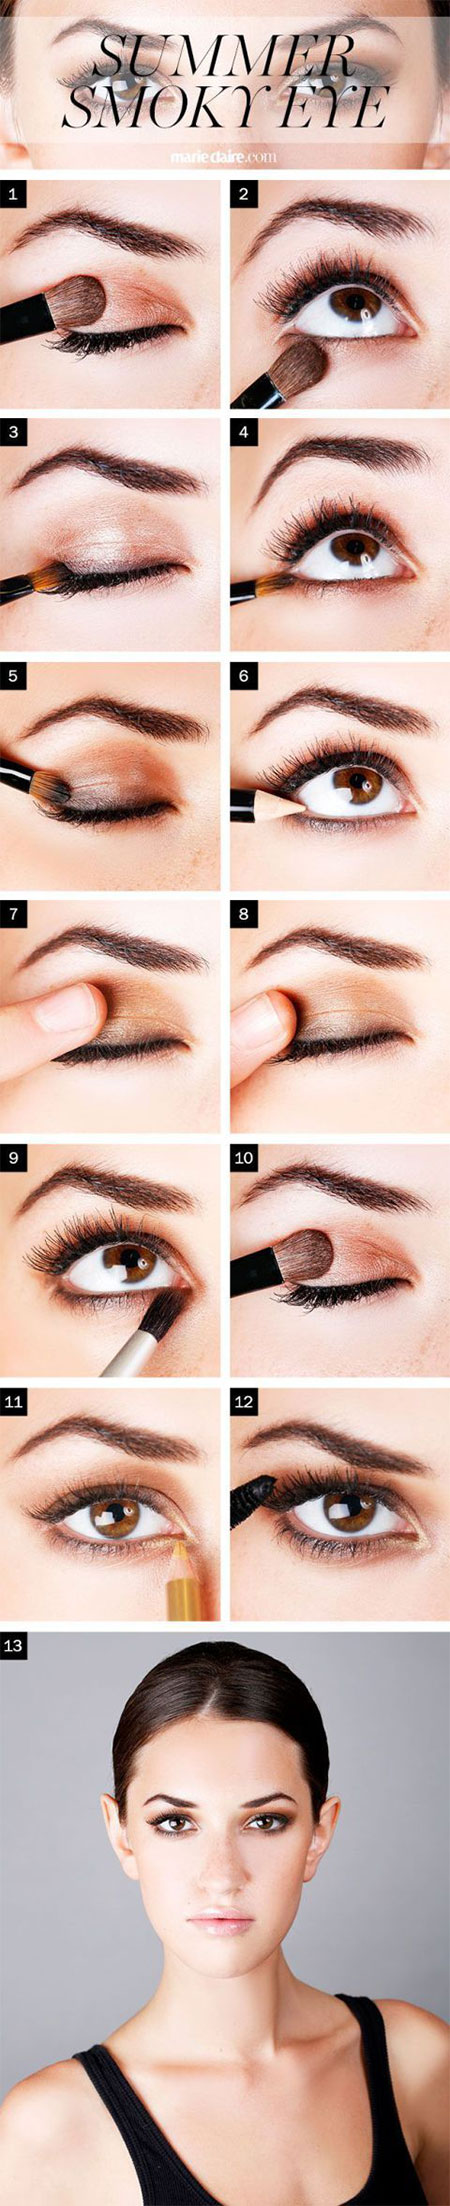 10-Step-By-Step-Summer-Makeup-Tutorials-For-Beginners-2016-5